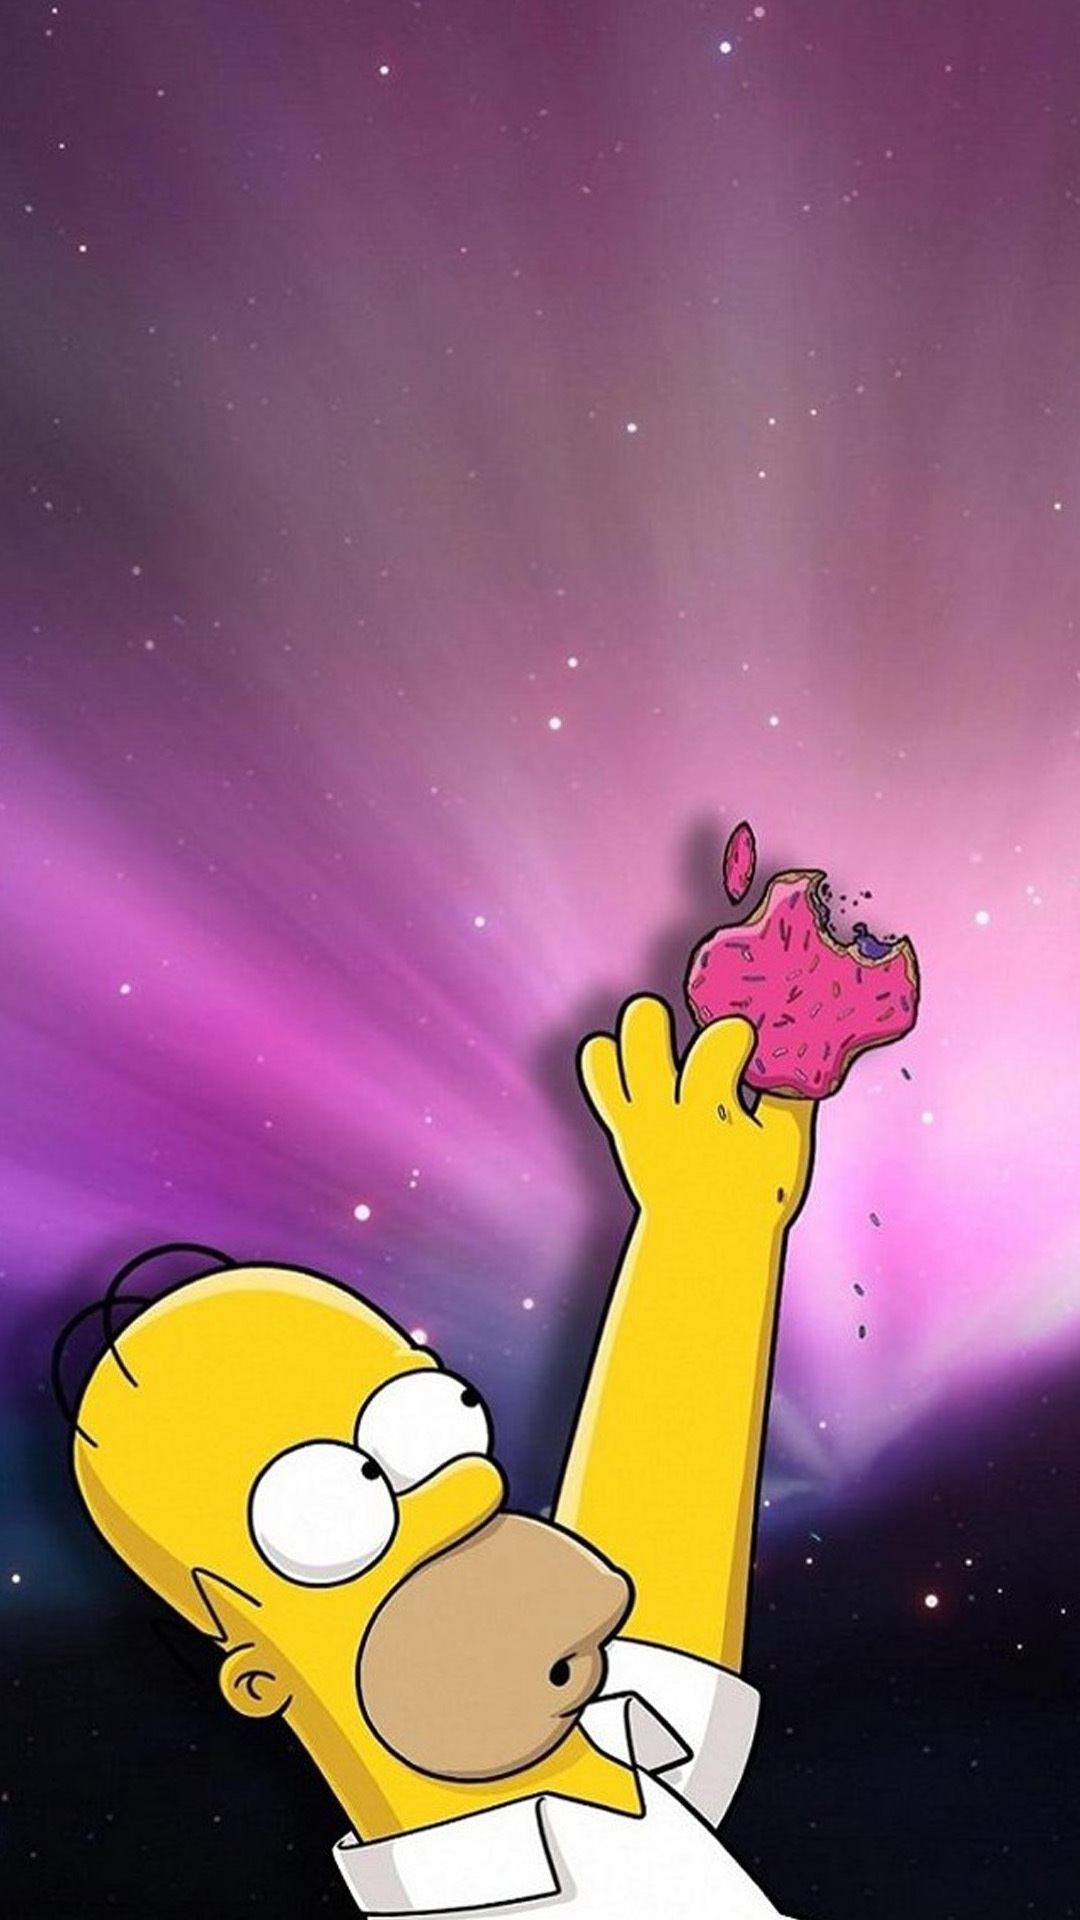 cute simpsons cartoon iphone wallpaper